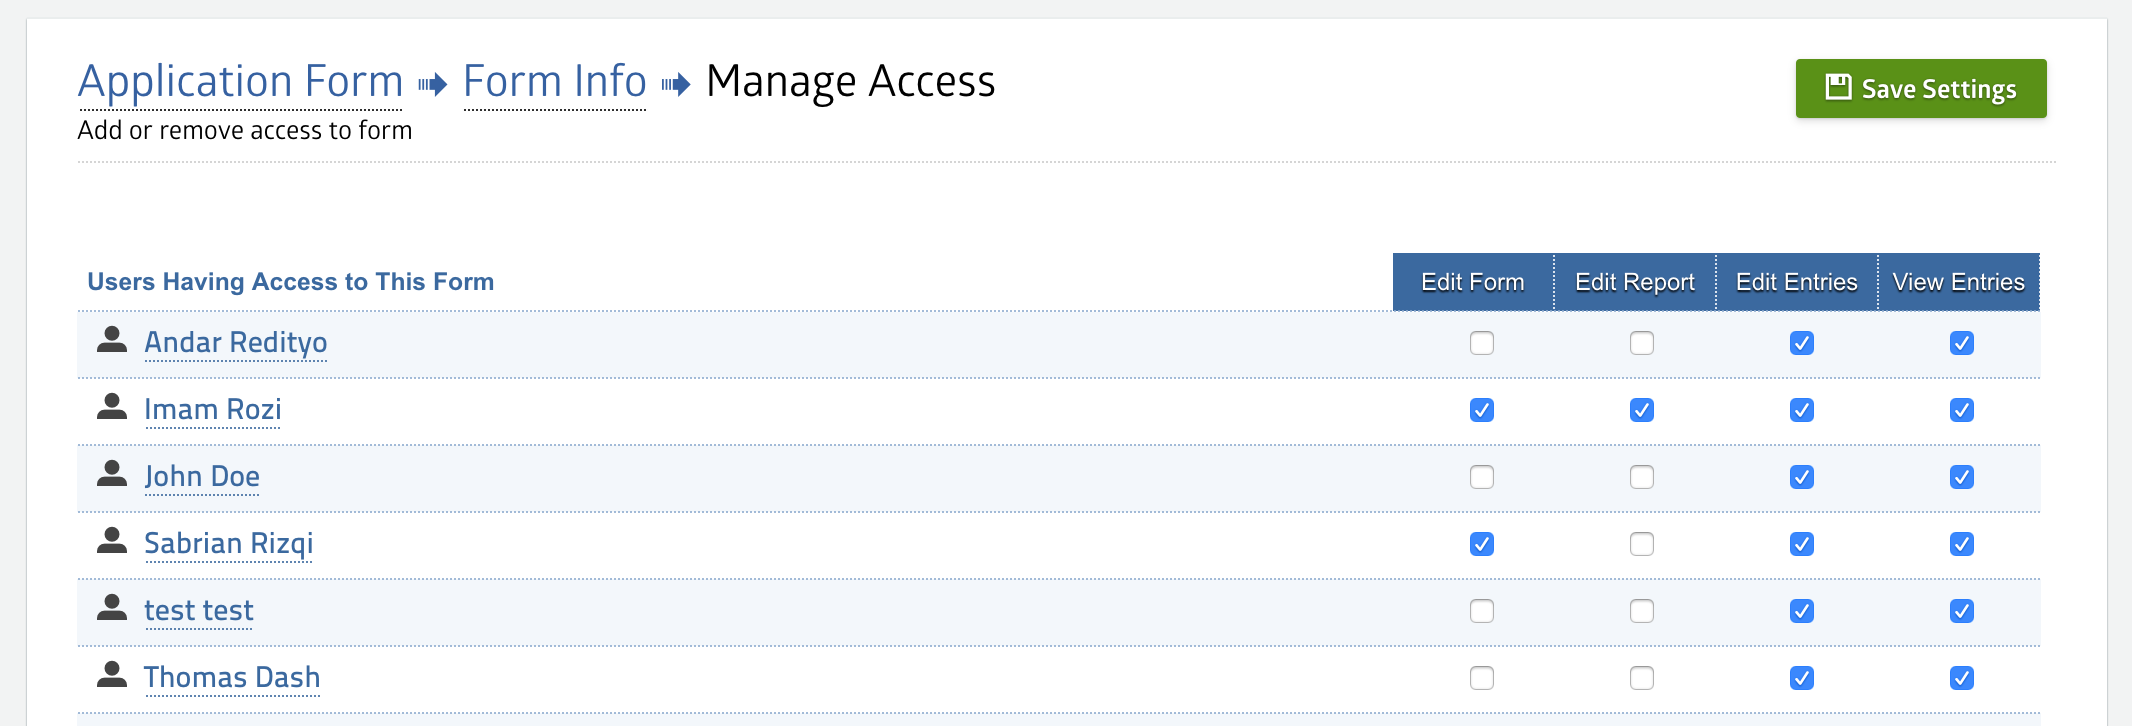 Manage Access - MachForm